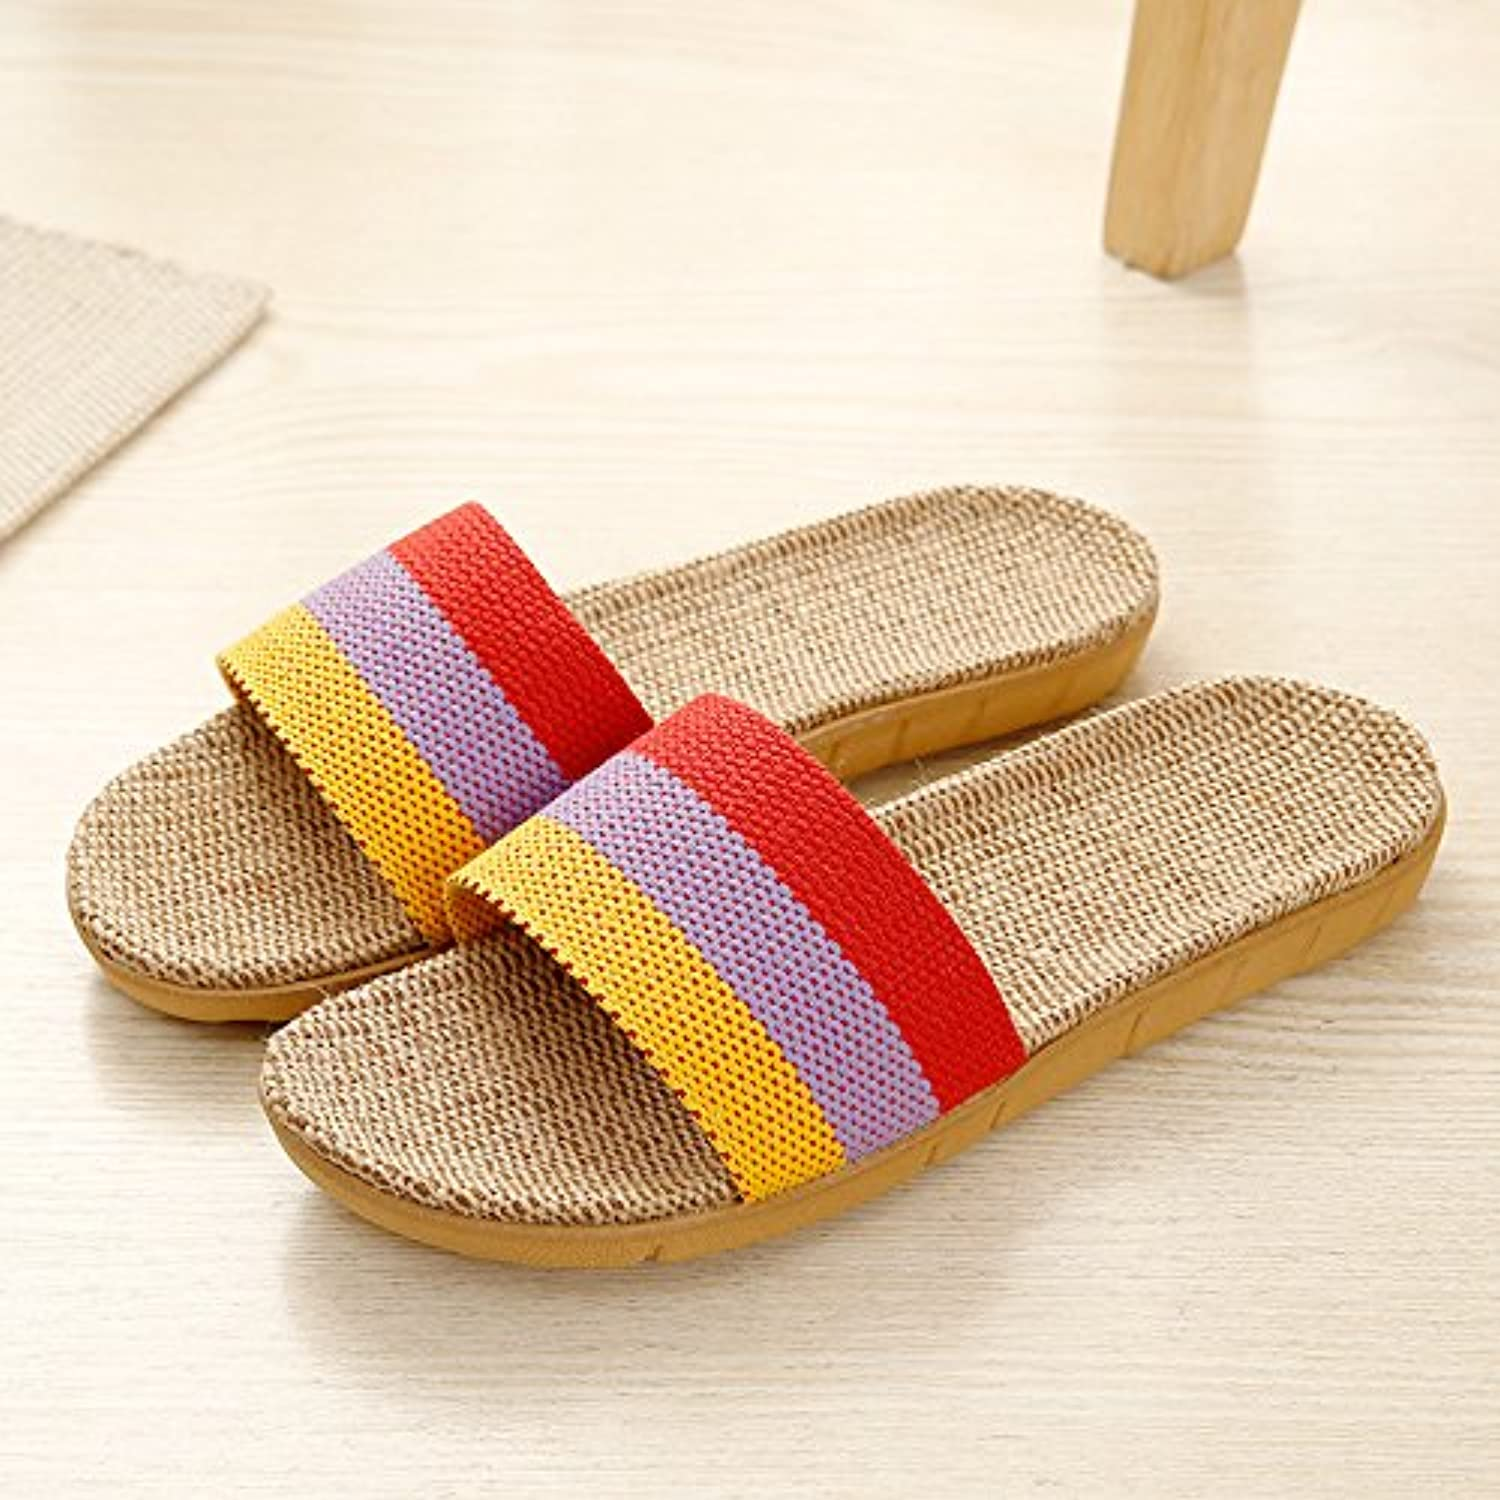 fankou Summer Home Linen Summer Cool Slippers Summer Linen Girls Stay in The Room for Couples Anti-Slip Thick  's Wooden... - B07C8D66YR - 5ad634